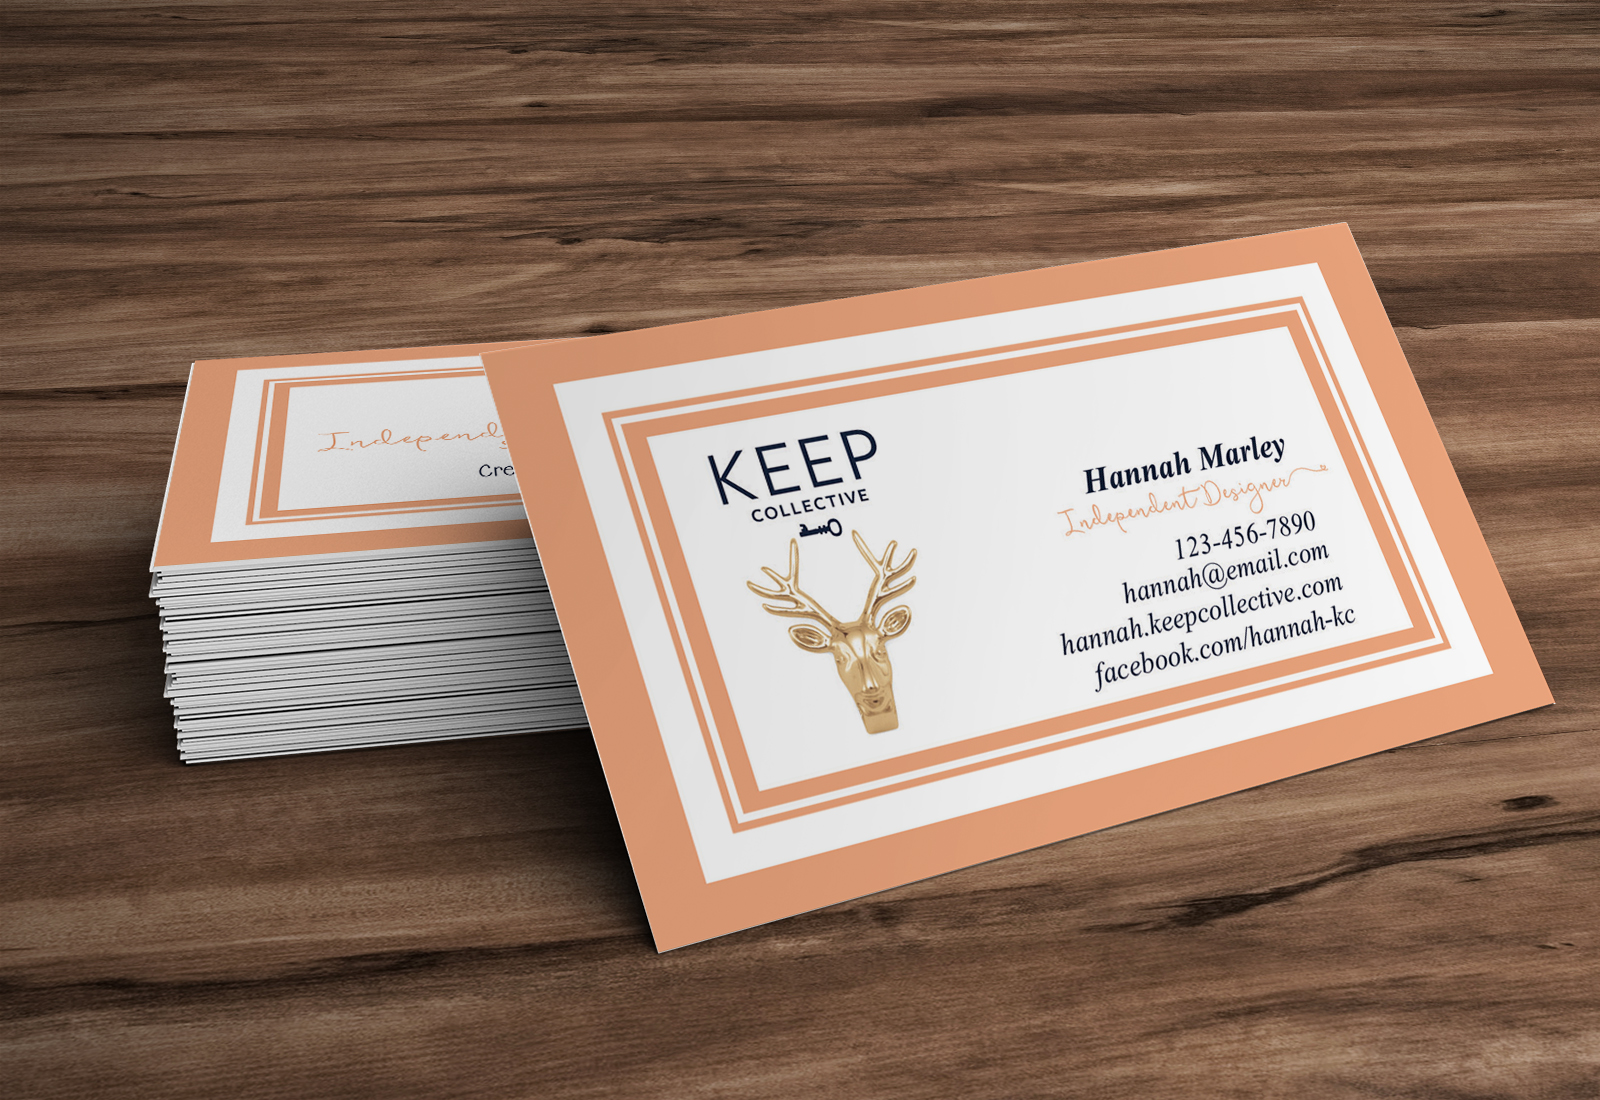 Keep Collective Business Cards · Hearts & Arrows Design · Online ...